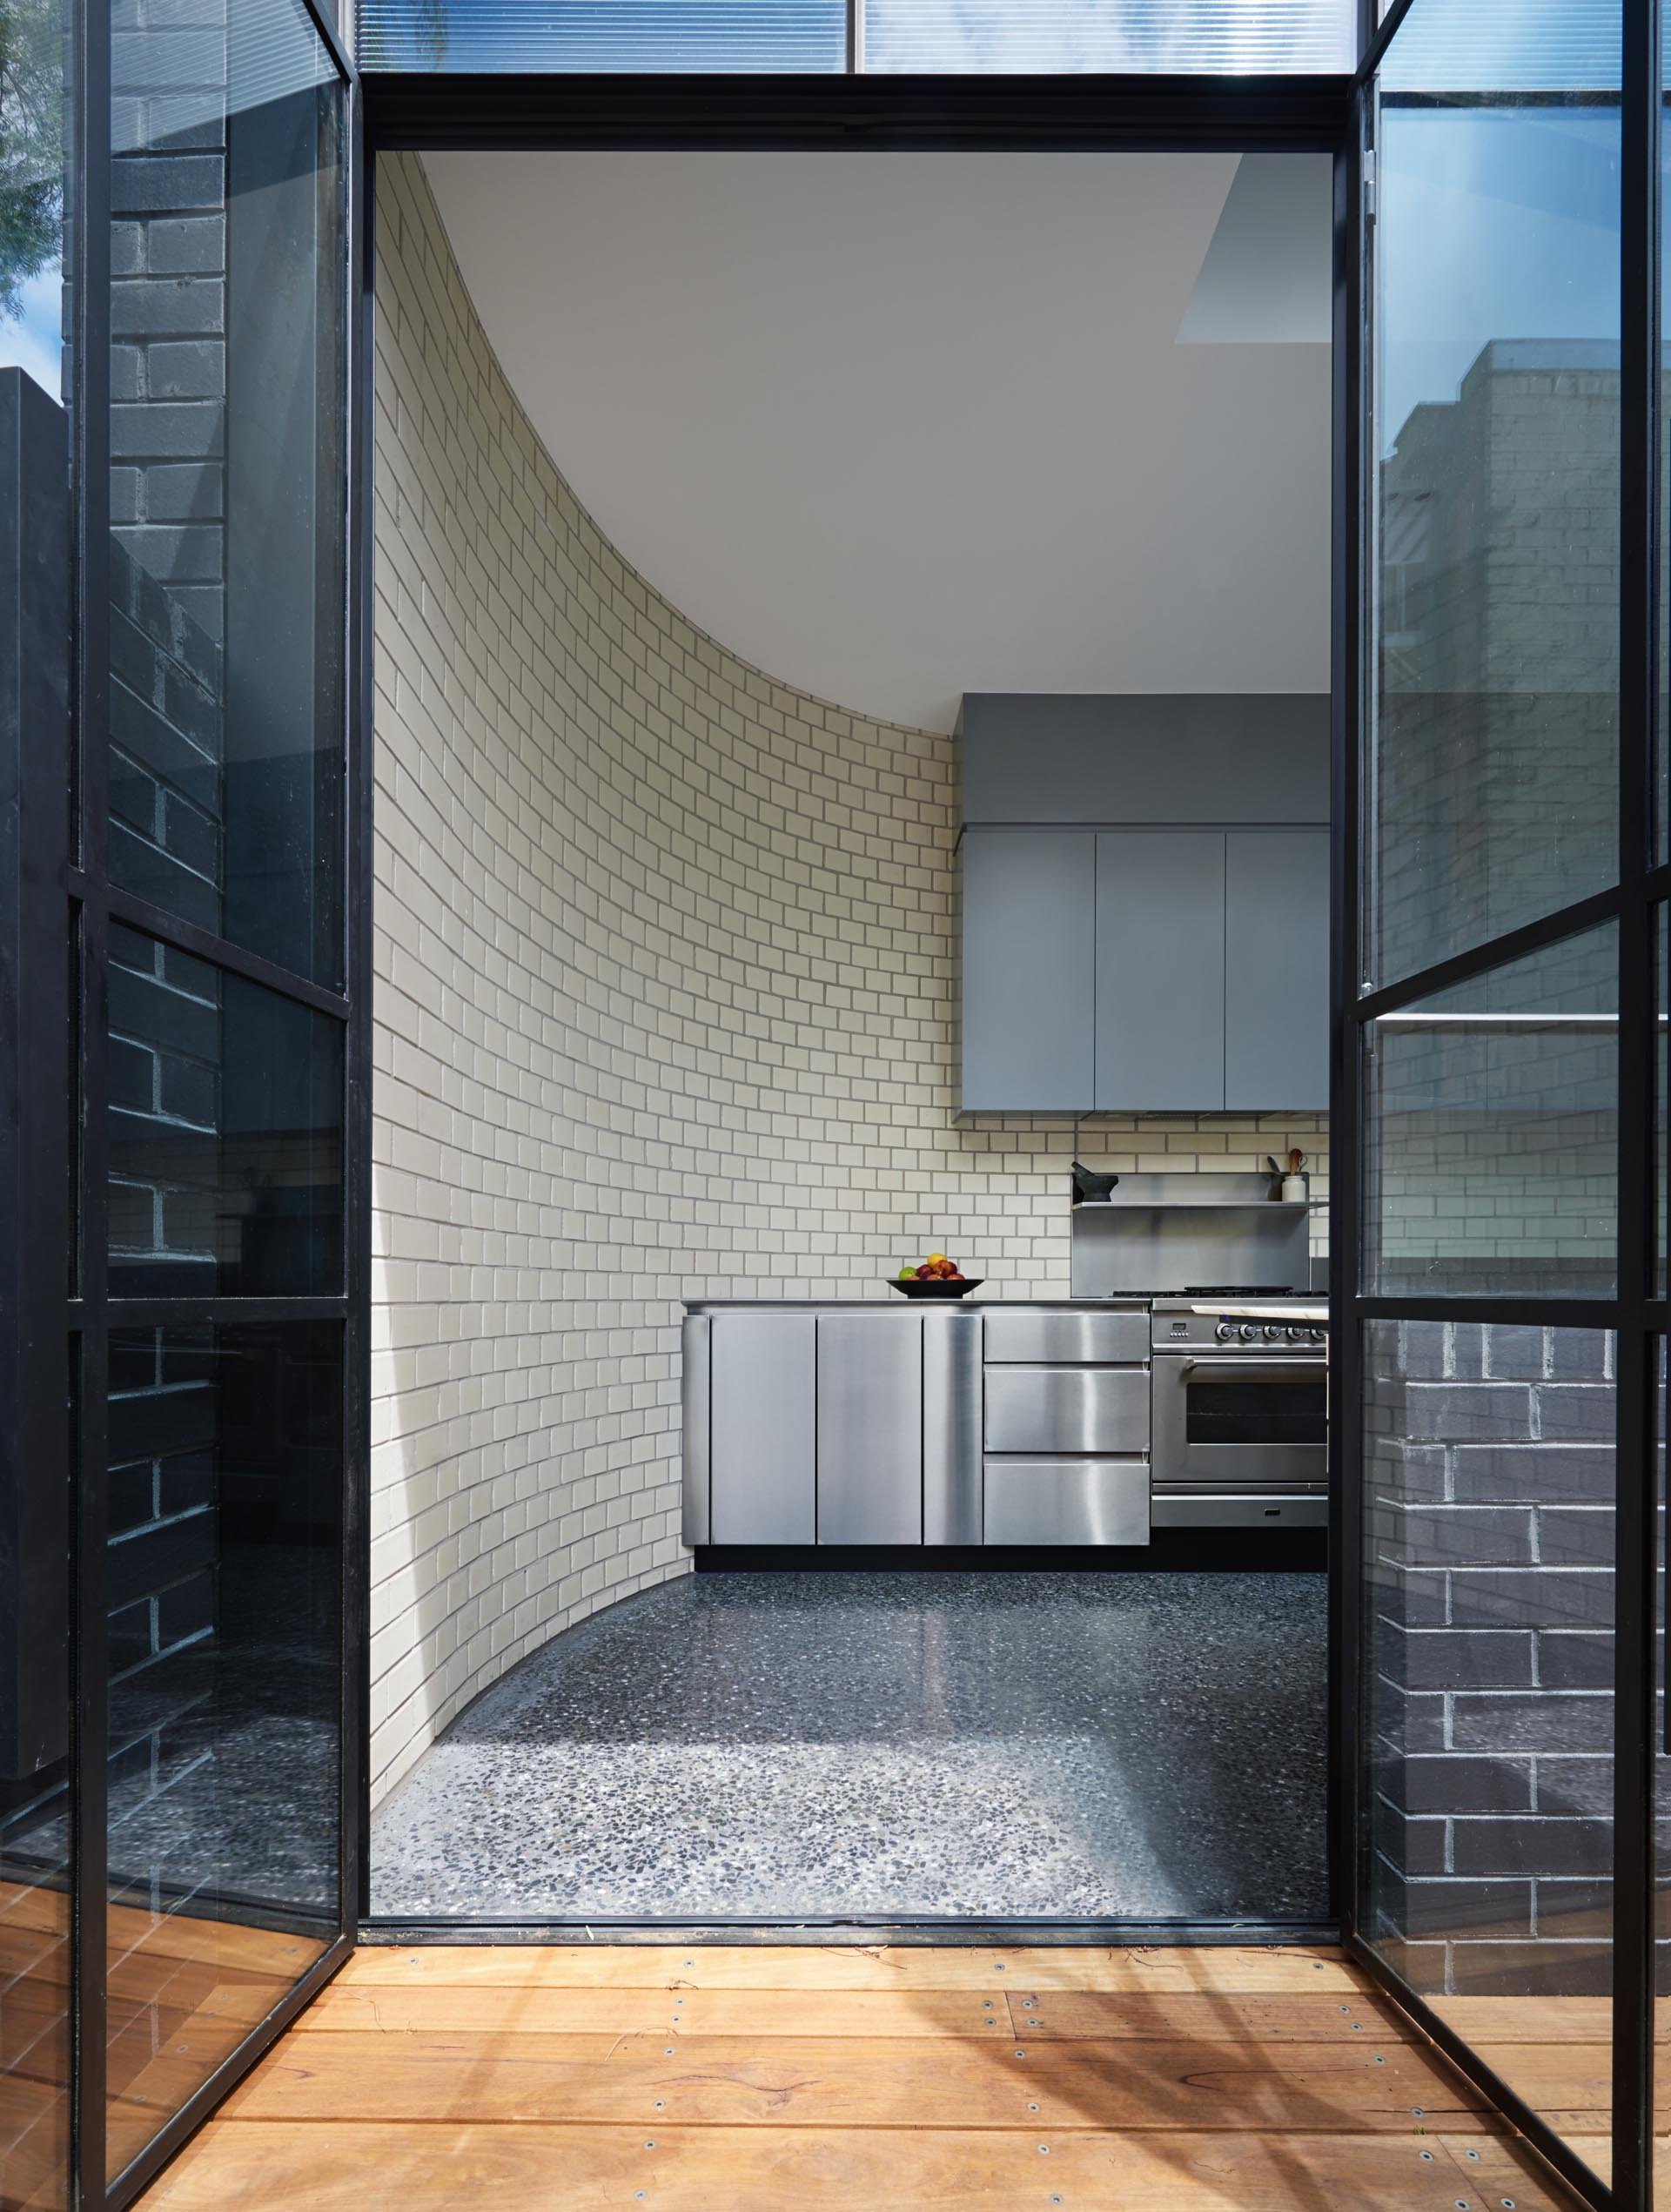 This modern kitchen is designed with a curved white brick wall, stainless steel lower cabinets, and minimalist upper cabinets with a matte finish. Opposite this wall of cabinetry, is a long timber countertop with built-in marble section for kneading dough.